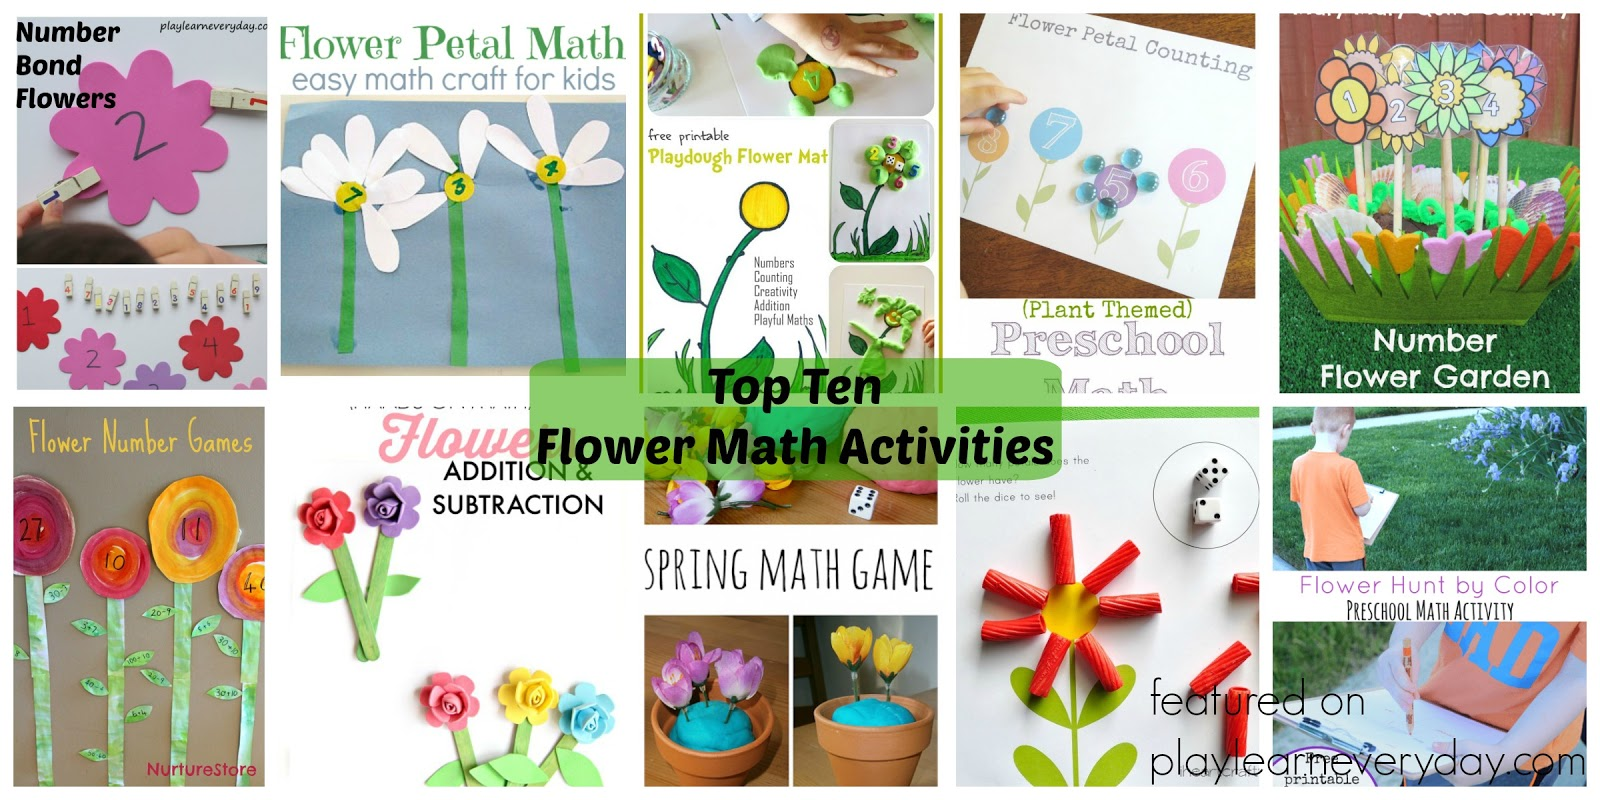 Top Ten Flower Math Activities - Play and Learn Every Day